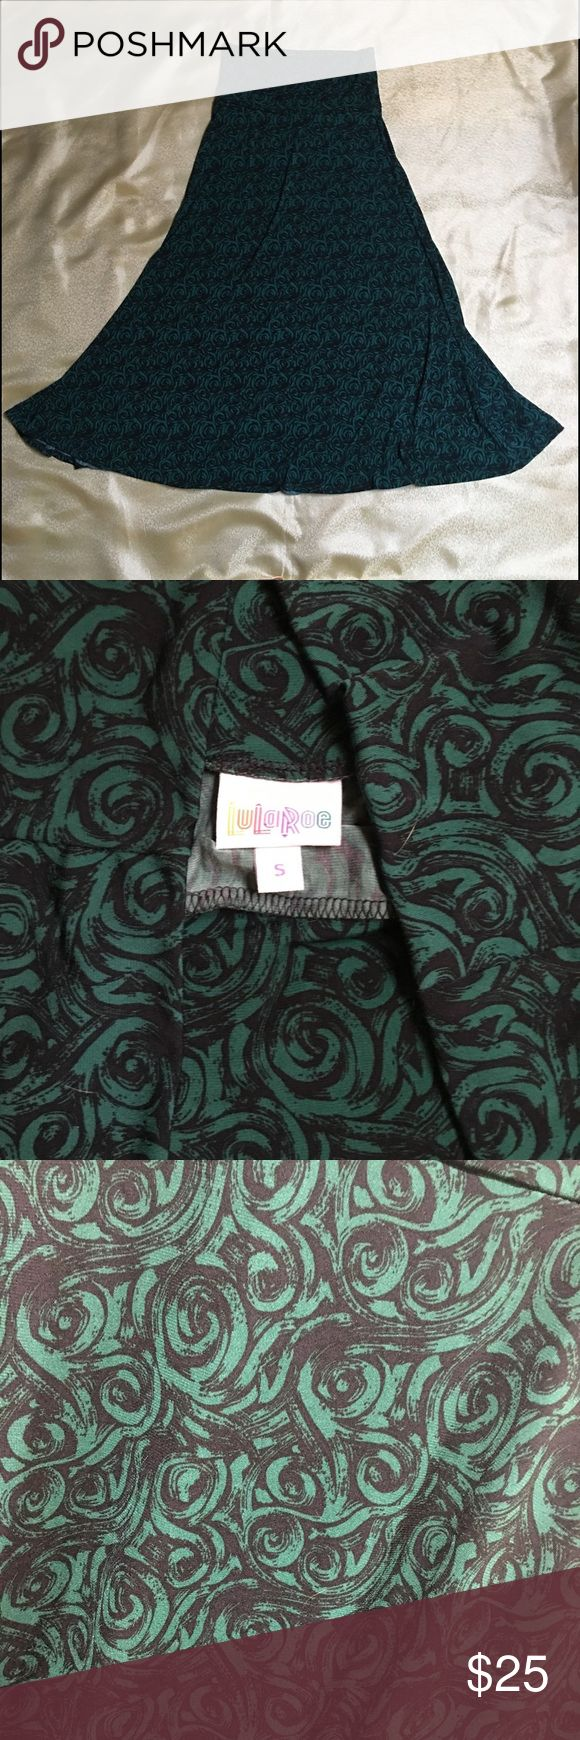 Lularoe green rosebud pattern maxi skirt - Size S Flowing green Lularoe Maxi Skirt. Beautiful emerald green pattern! Preloved but in excellent condition with no visible flaws. Comes from a smoke free home. Small fits a size 6-8 according to LR size chart, but I'm a 4/6 and it fit great too! LuLaRoe Skirts Maxi